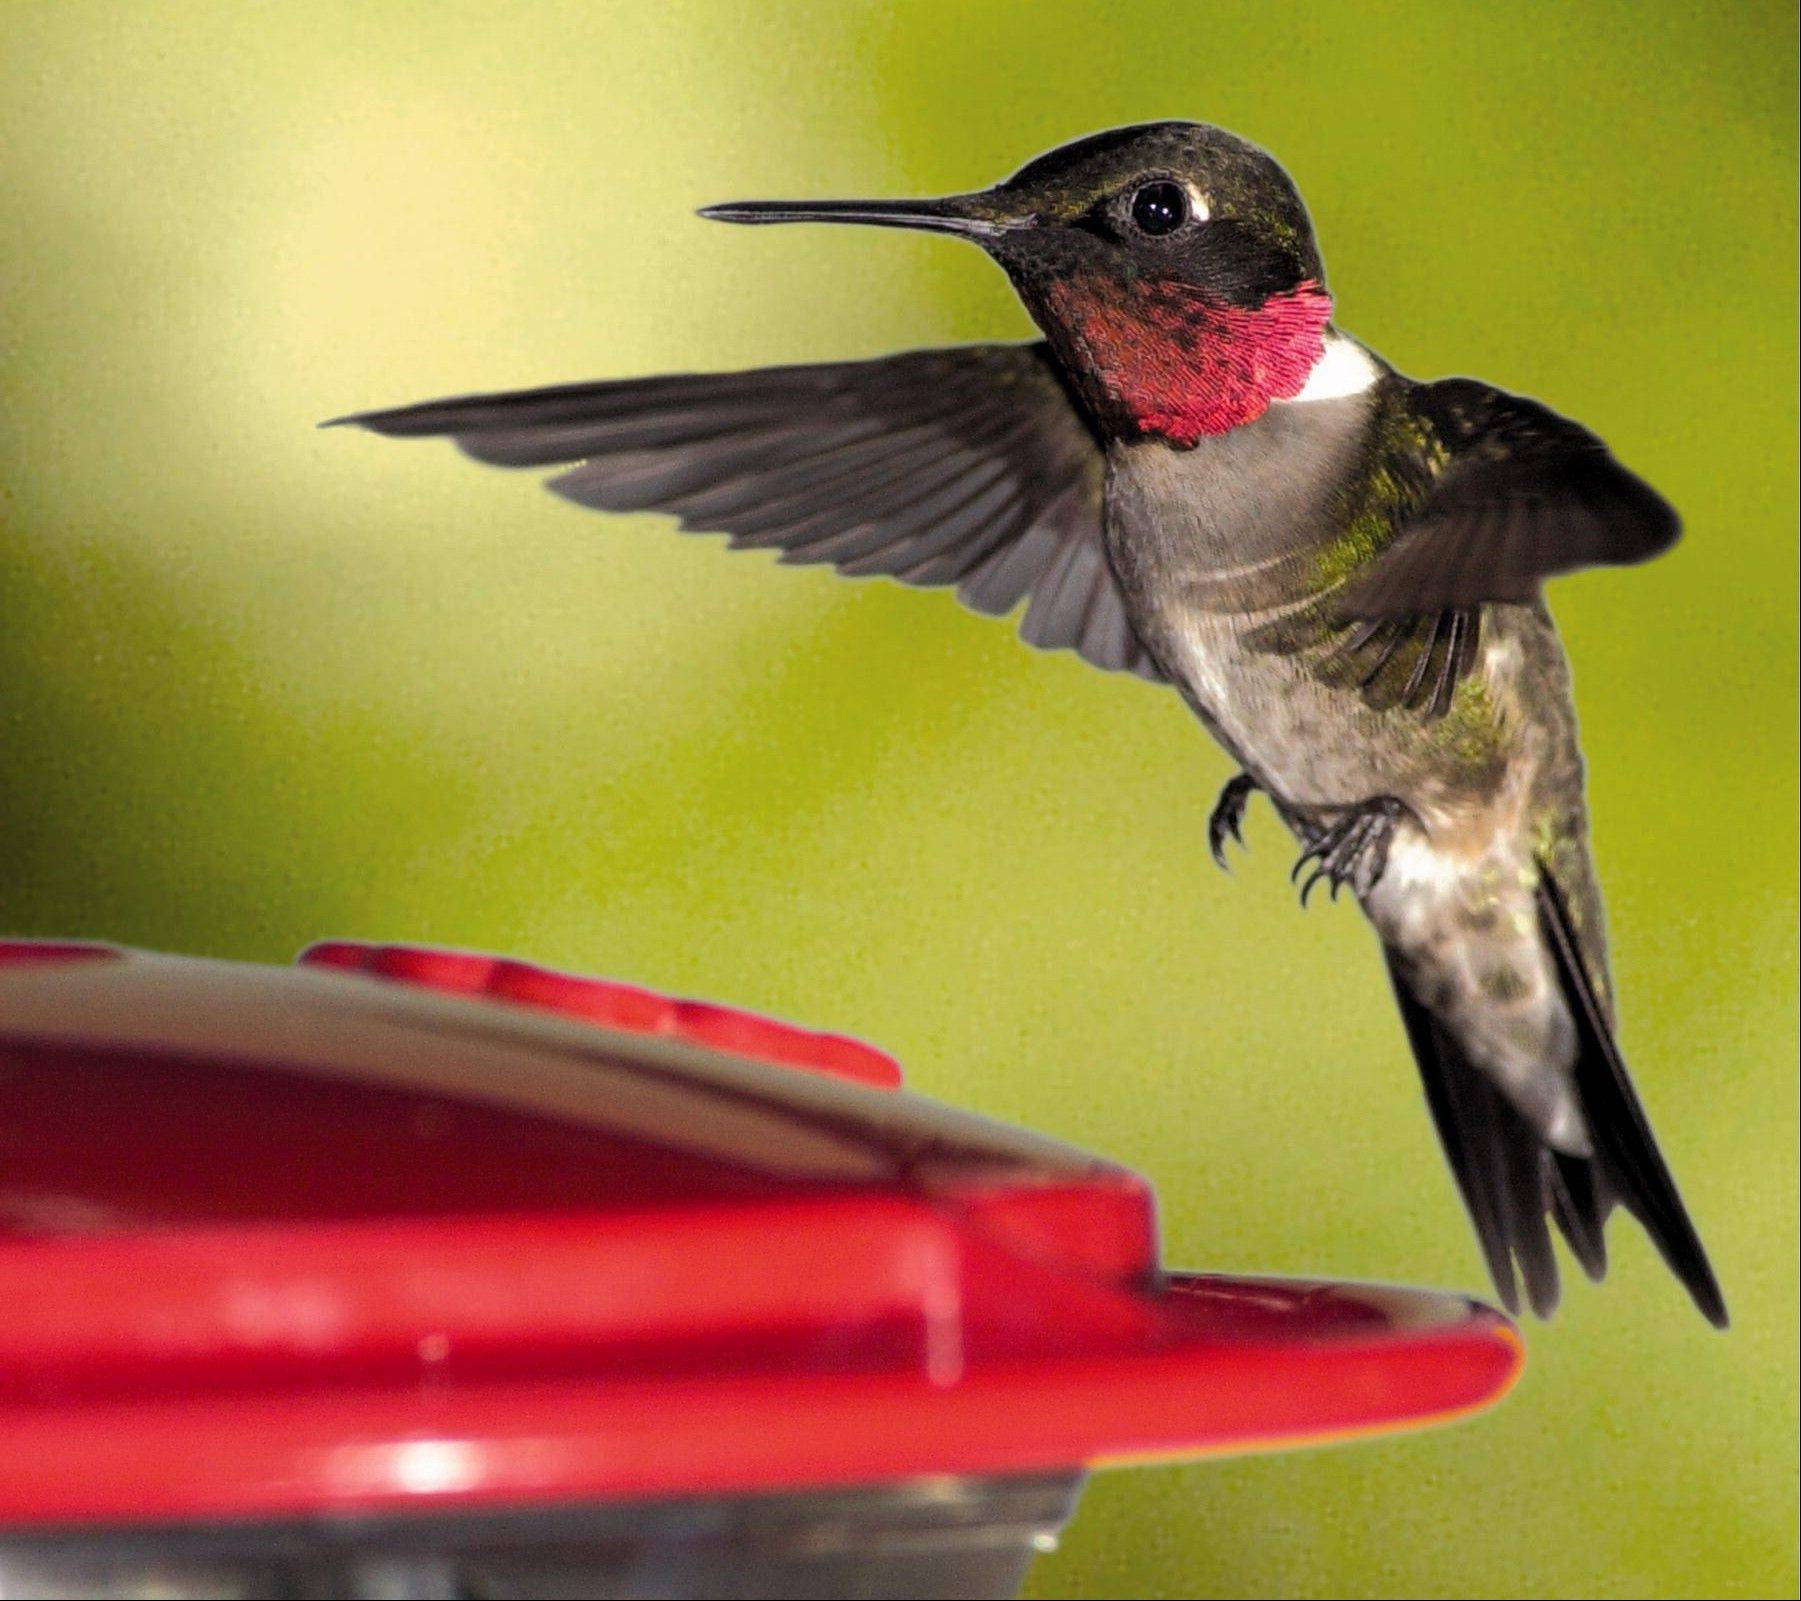 A ruby-throated hummingbird is the smallest bird in the world weighing a tenth of an ounce, has a brain the size of a BB, wobbly legs and enemies like the praying mantis and bull frog.